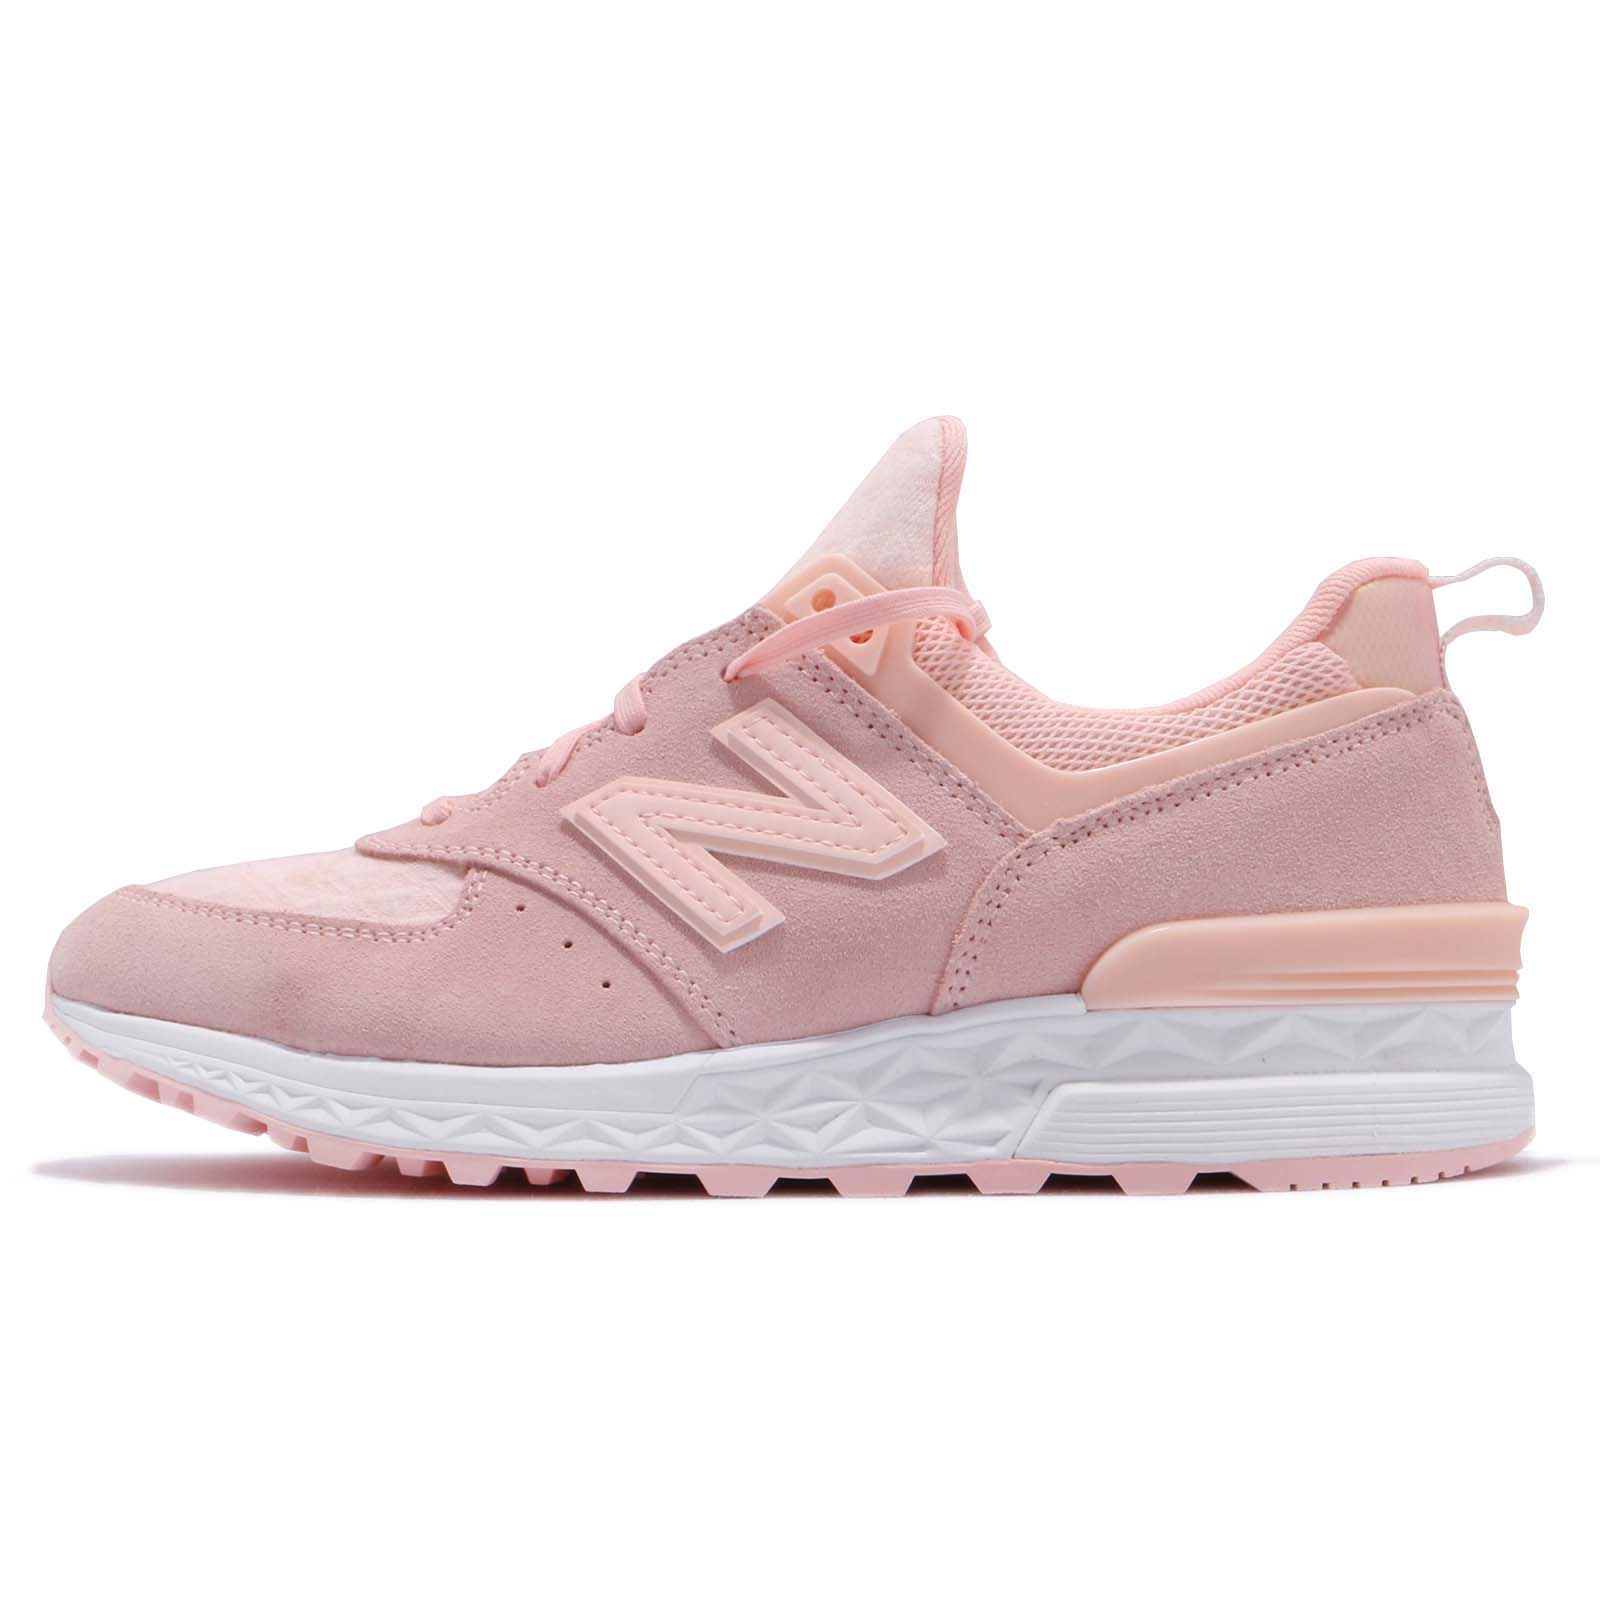 New Balance WS574SNCB Suede Pink White Women Running Shoes Sneakers WS574SNCB